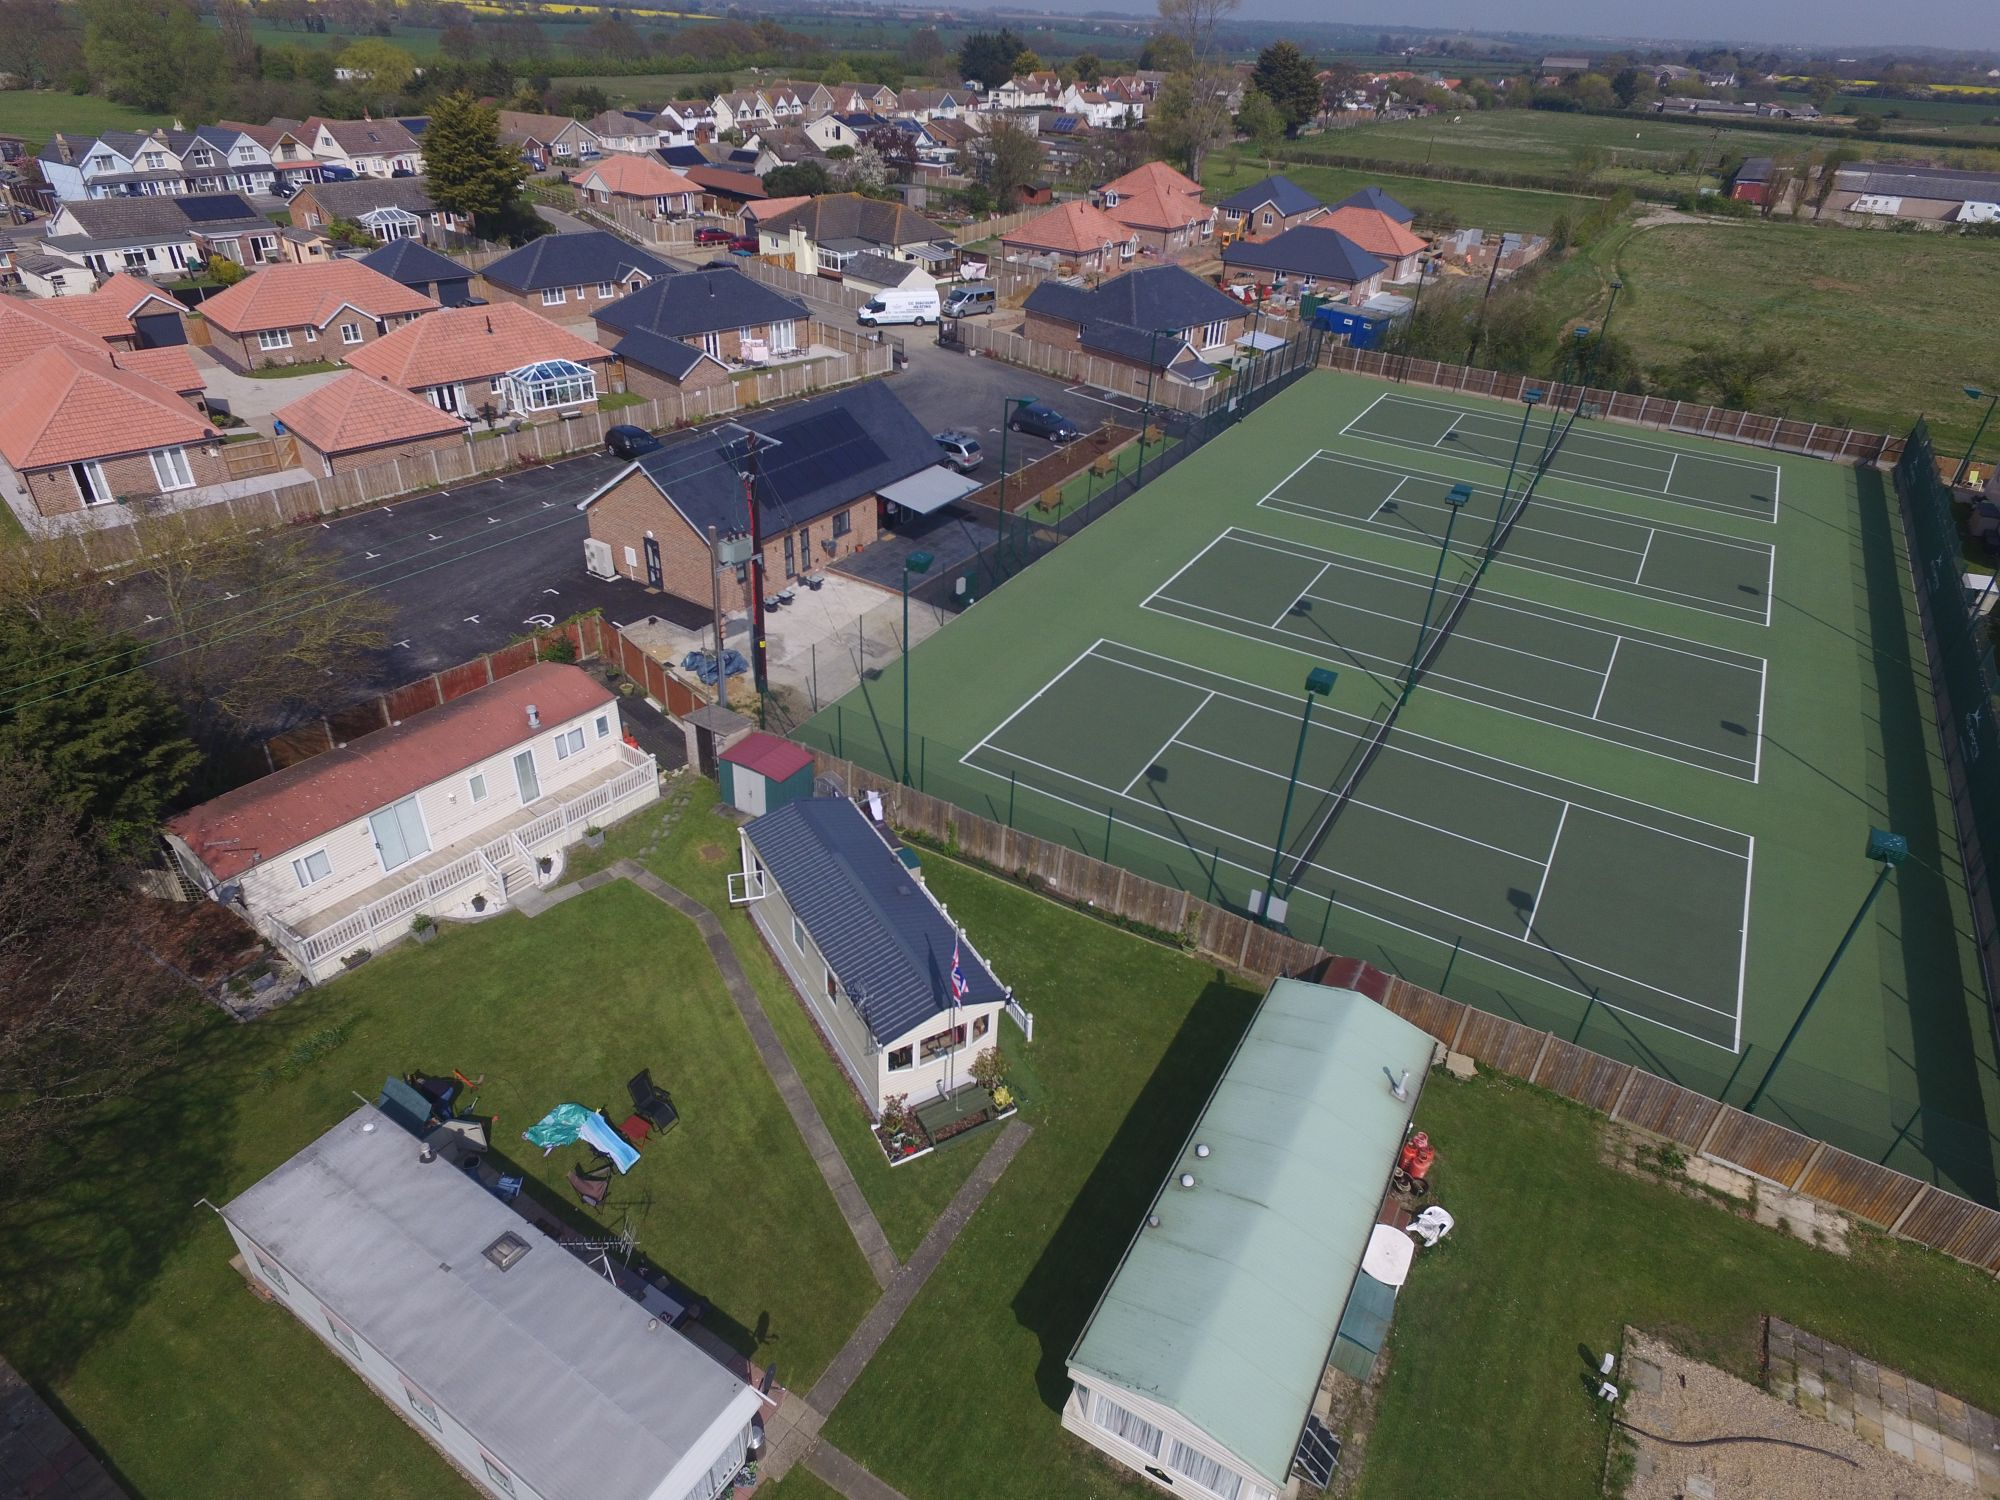 Asphalt tennis court surfaces are a high quality, affordable choice for tennis clubs in the UK